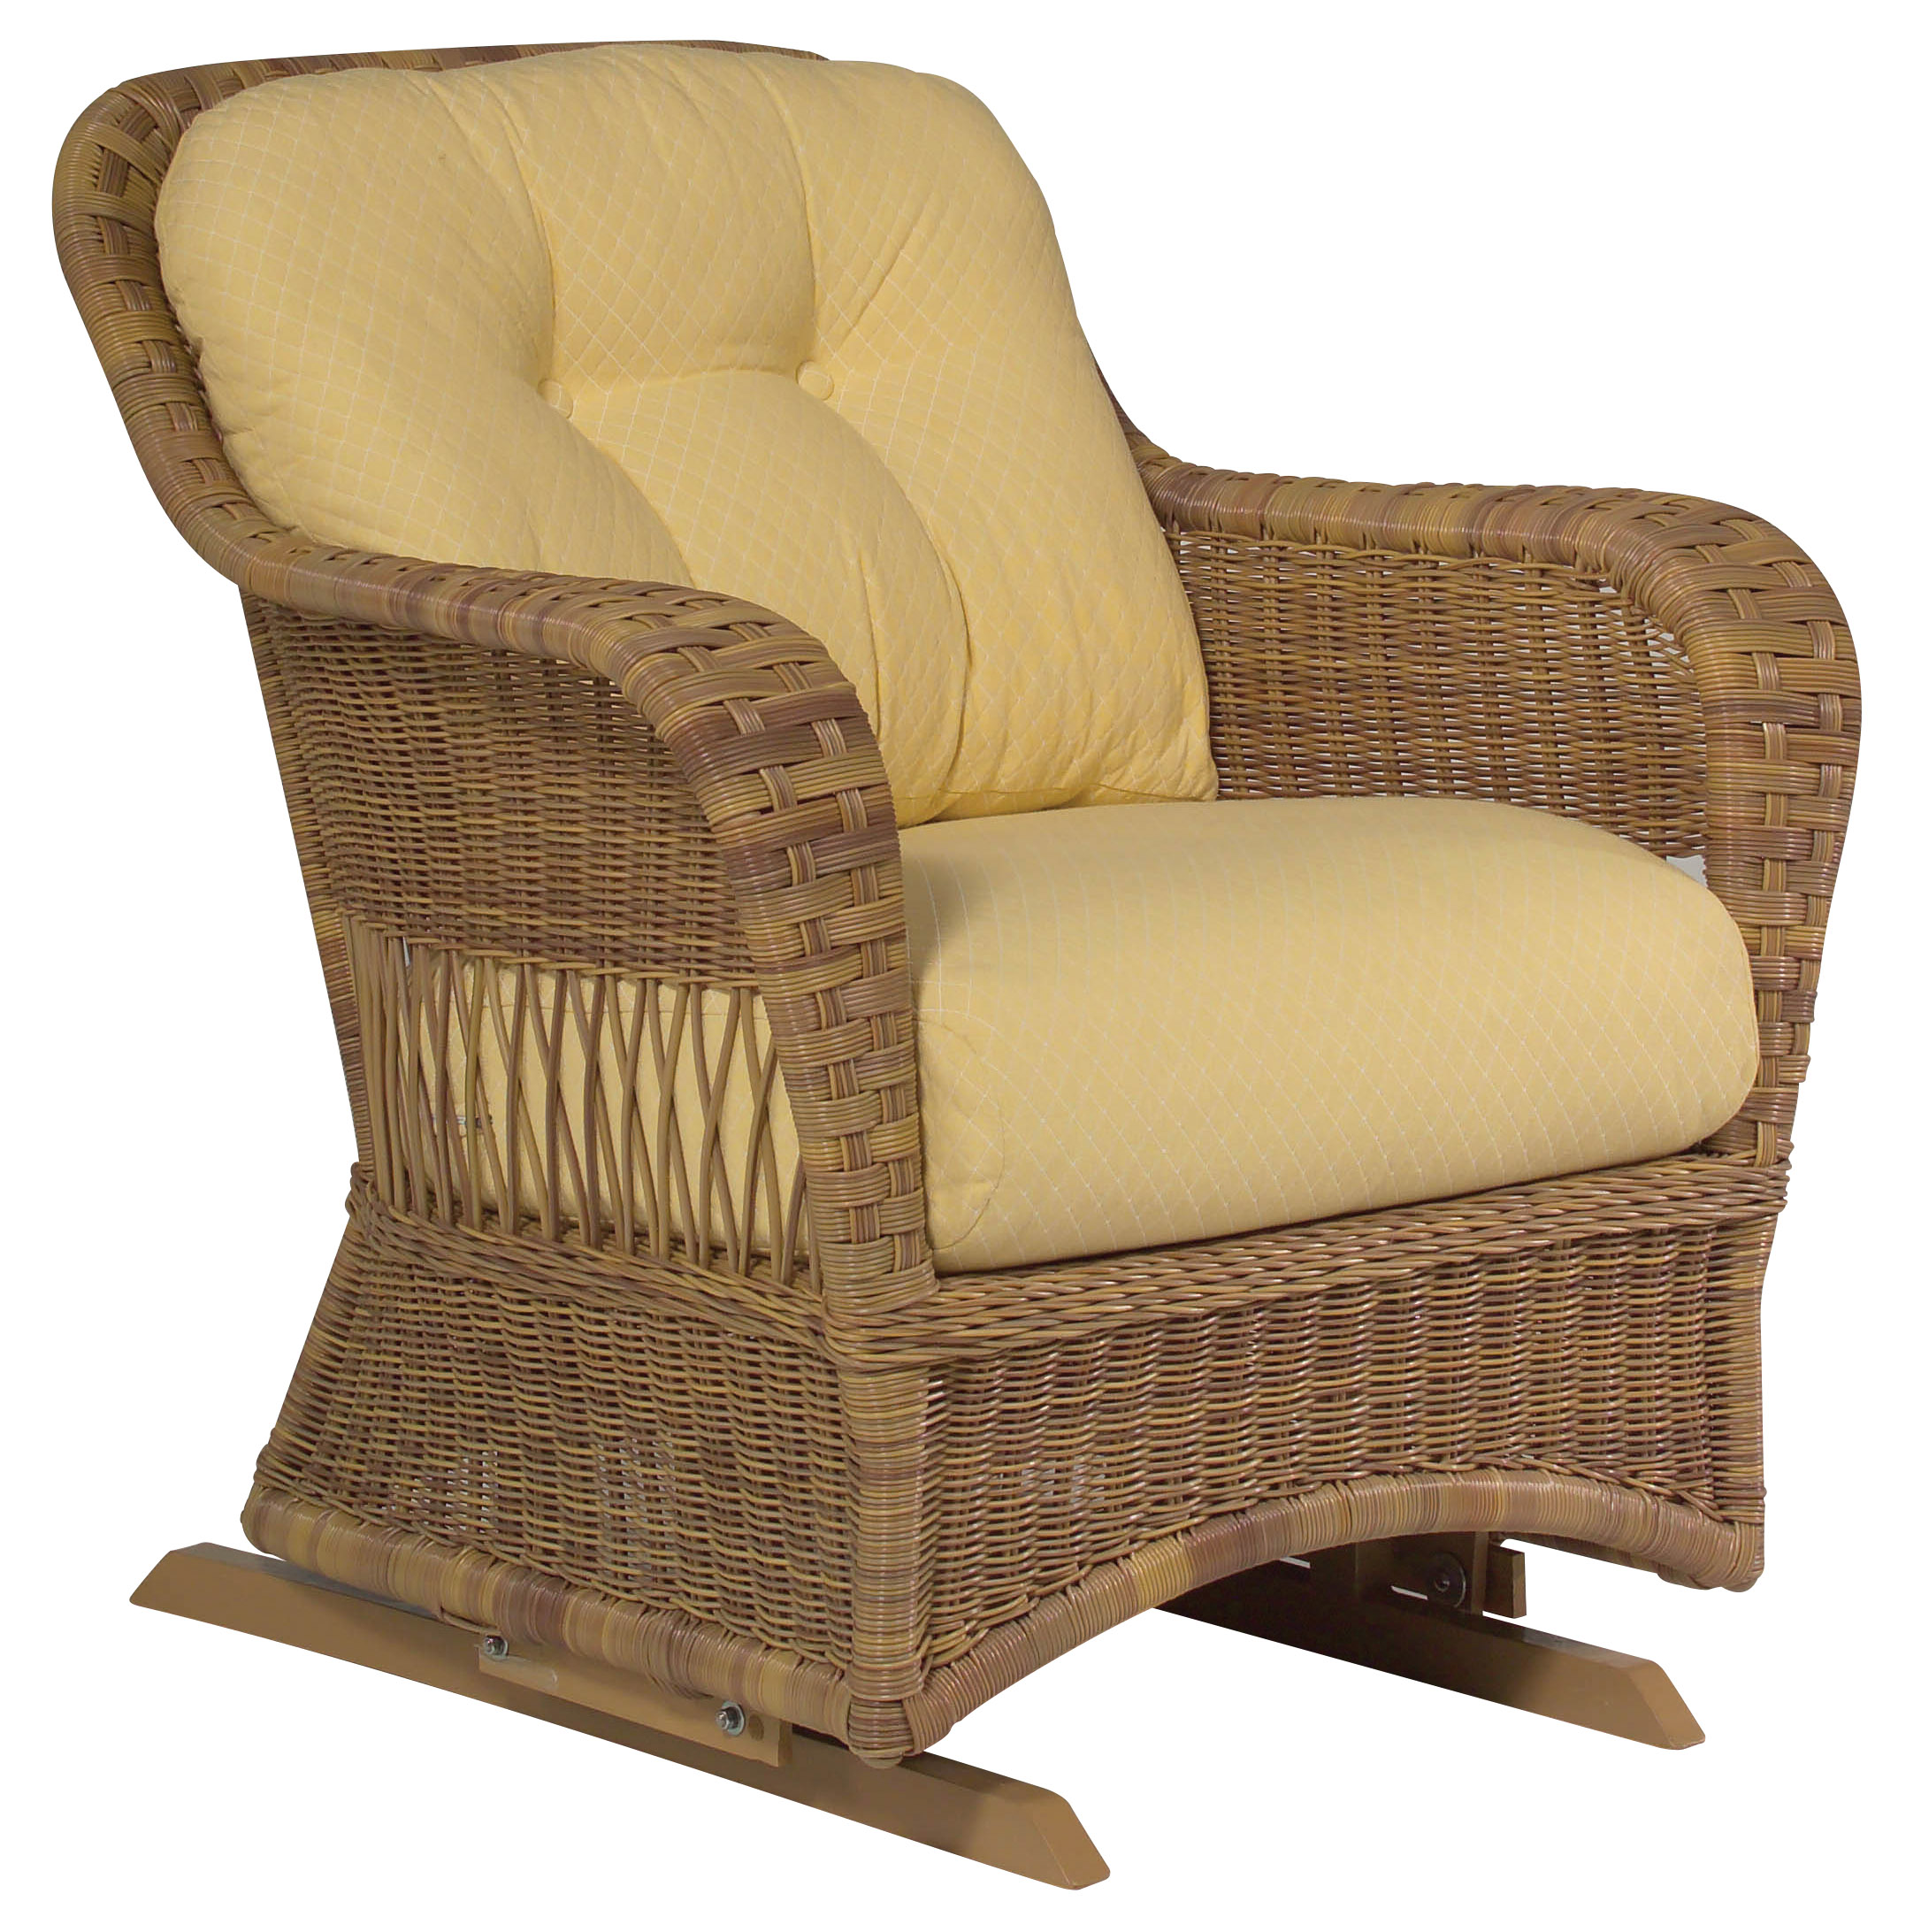 Sommerwind Outdoor Wicker Glider Chair S596081